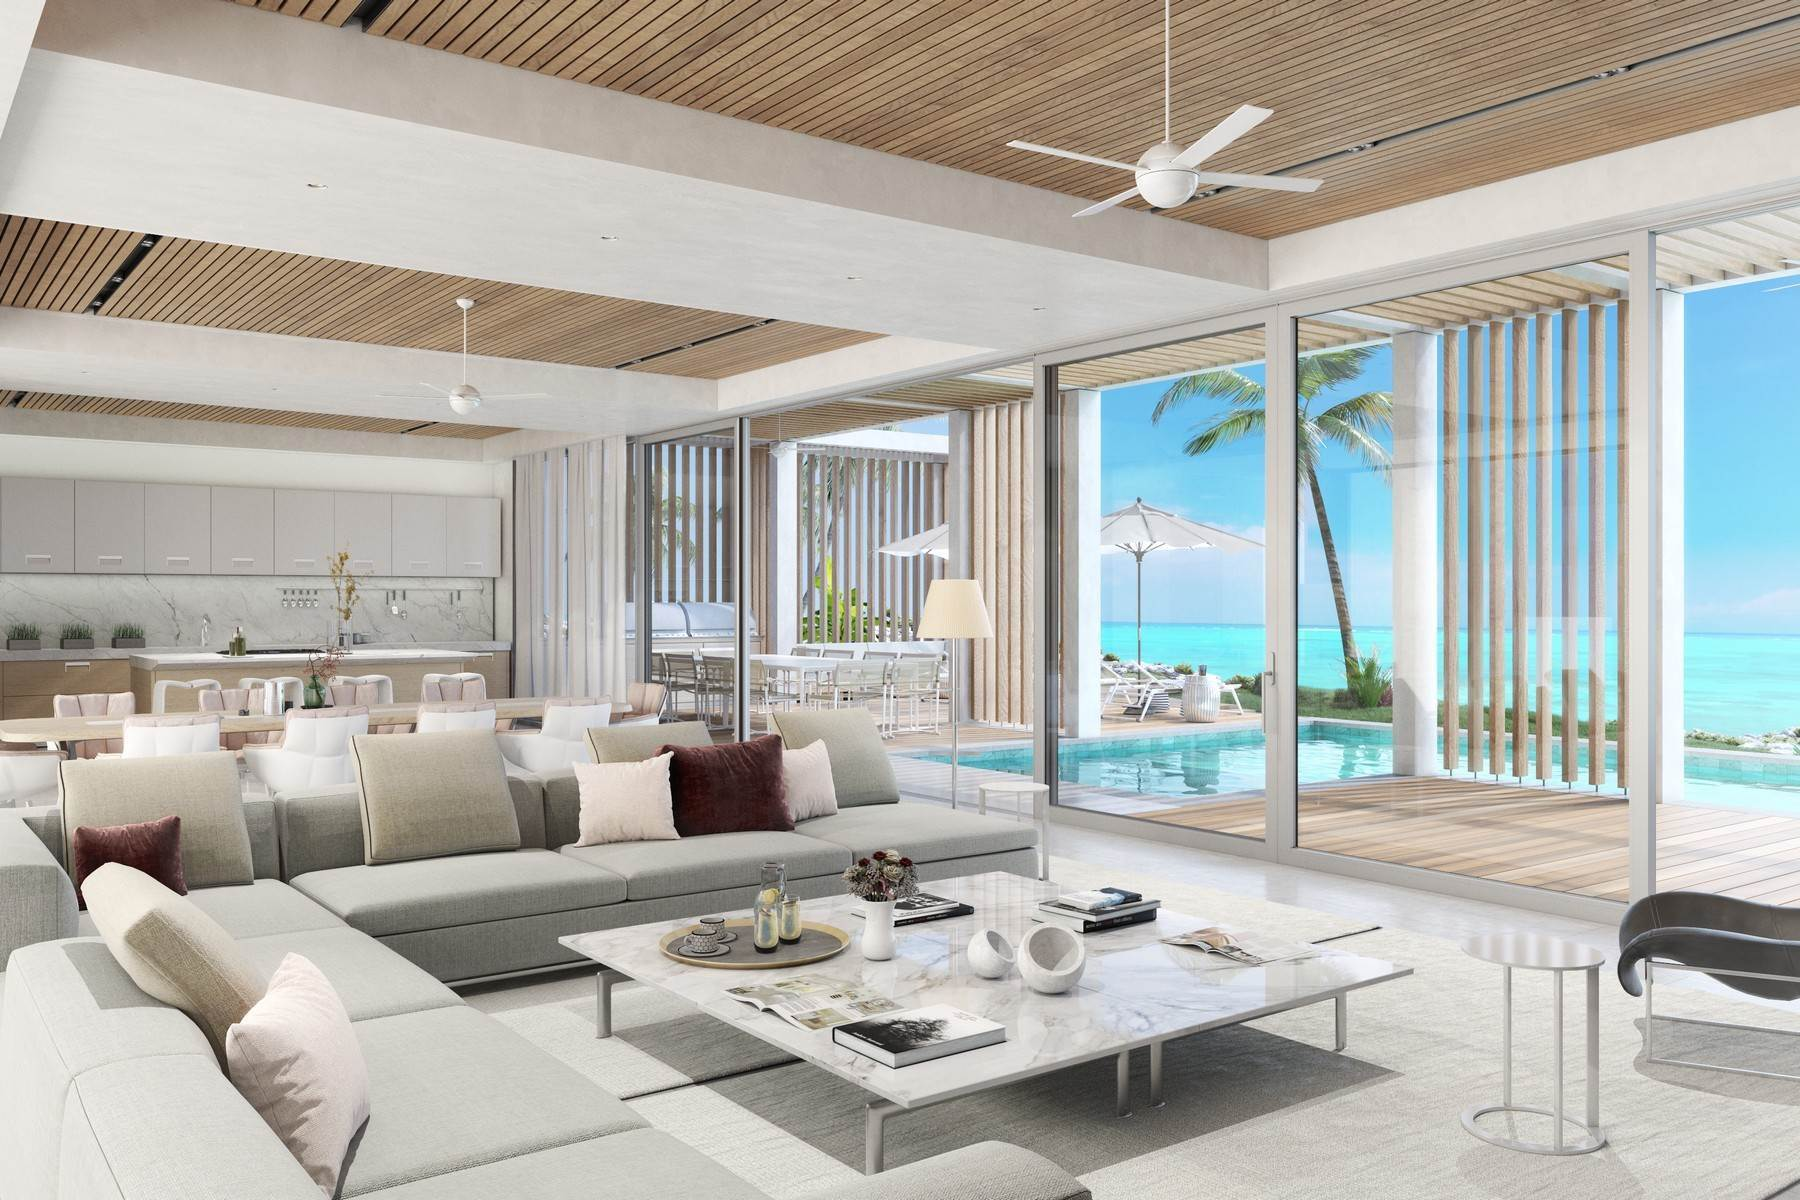 3. Single Family Homes for Sale at LONG BAY BEACH DUNE VILLA 1 AT SOUTH BANK - THE OCEAN ESTATE South Bank, Long Bay, Providenciales Turks And Caicos Islands